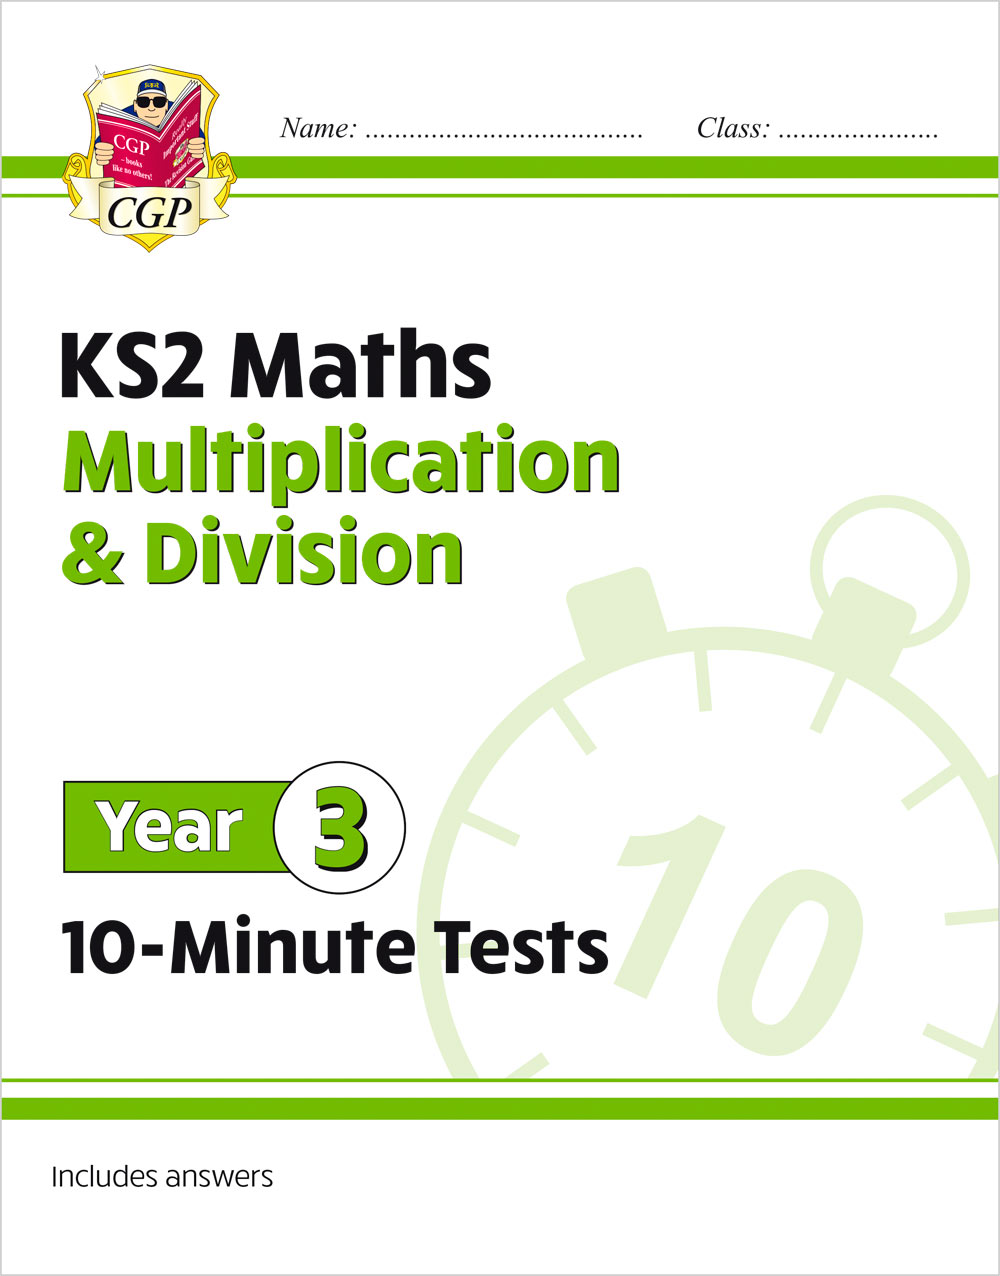 M3MDXP21 - New KS2 Maths 10-Minute Tests: Multiplication & Division - Year 3